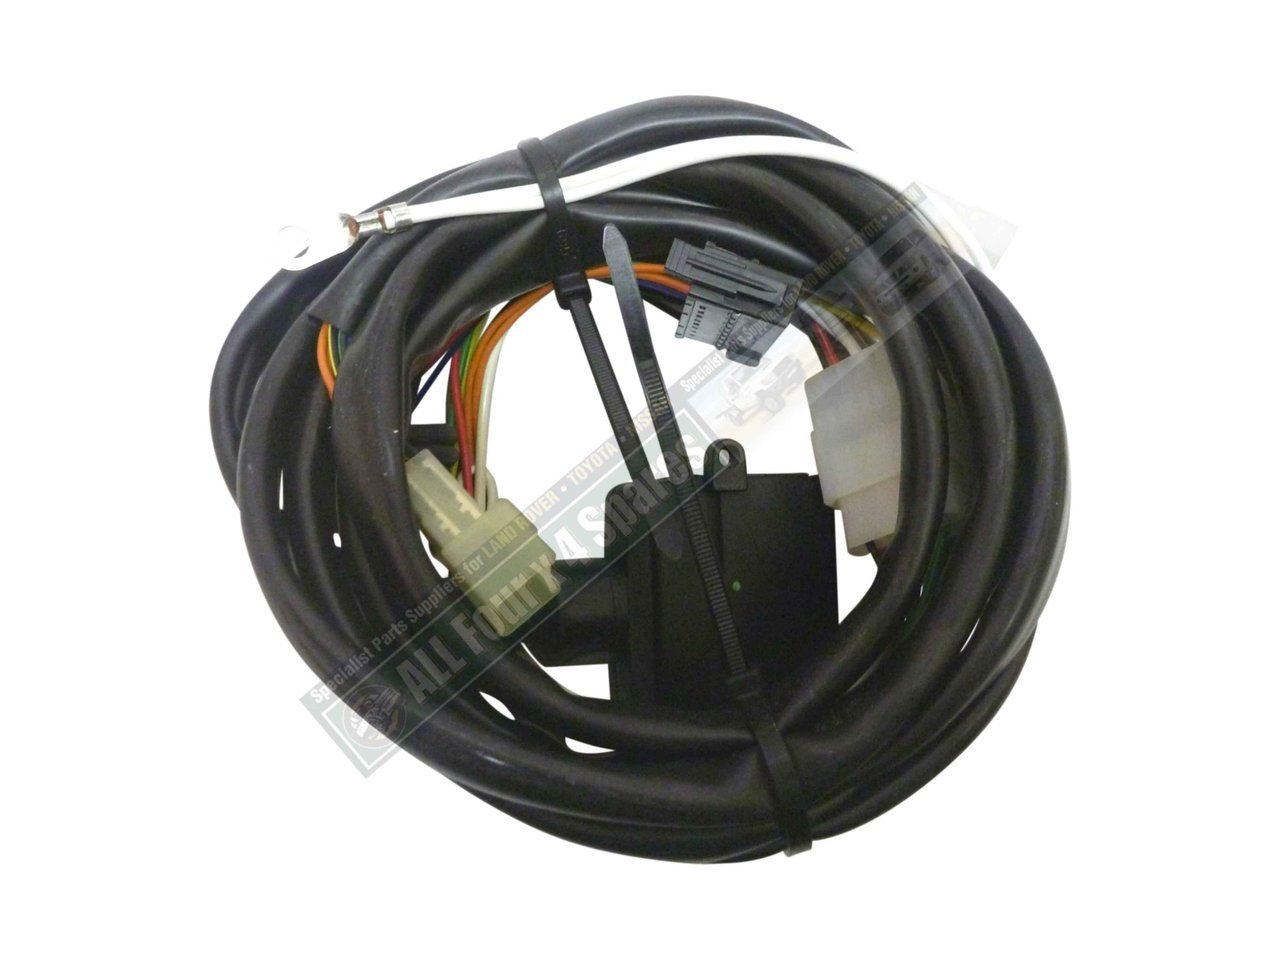 Milford Towbar Wiring Harness Suitable For Subaru Outback